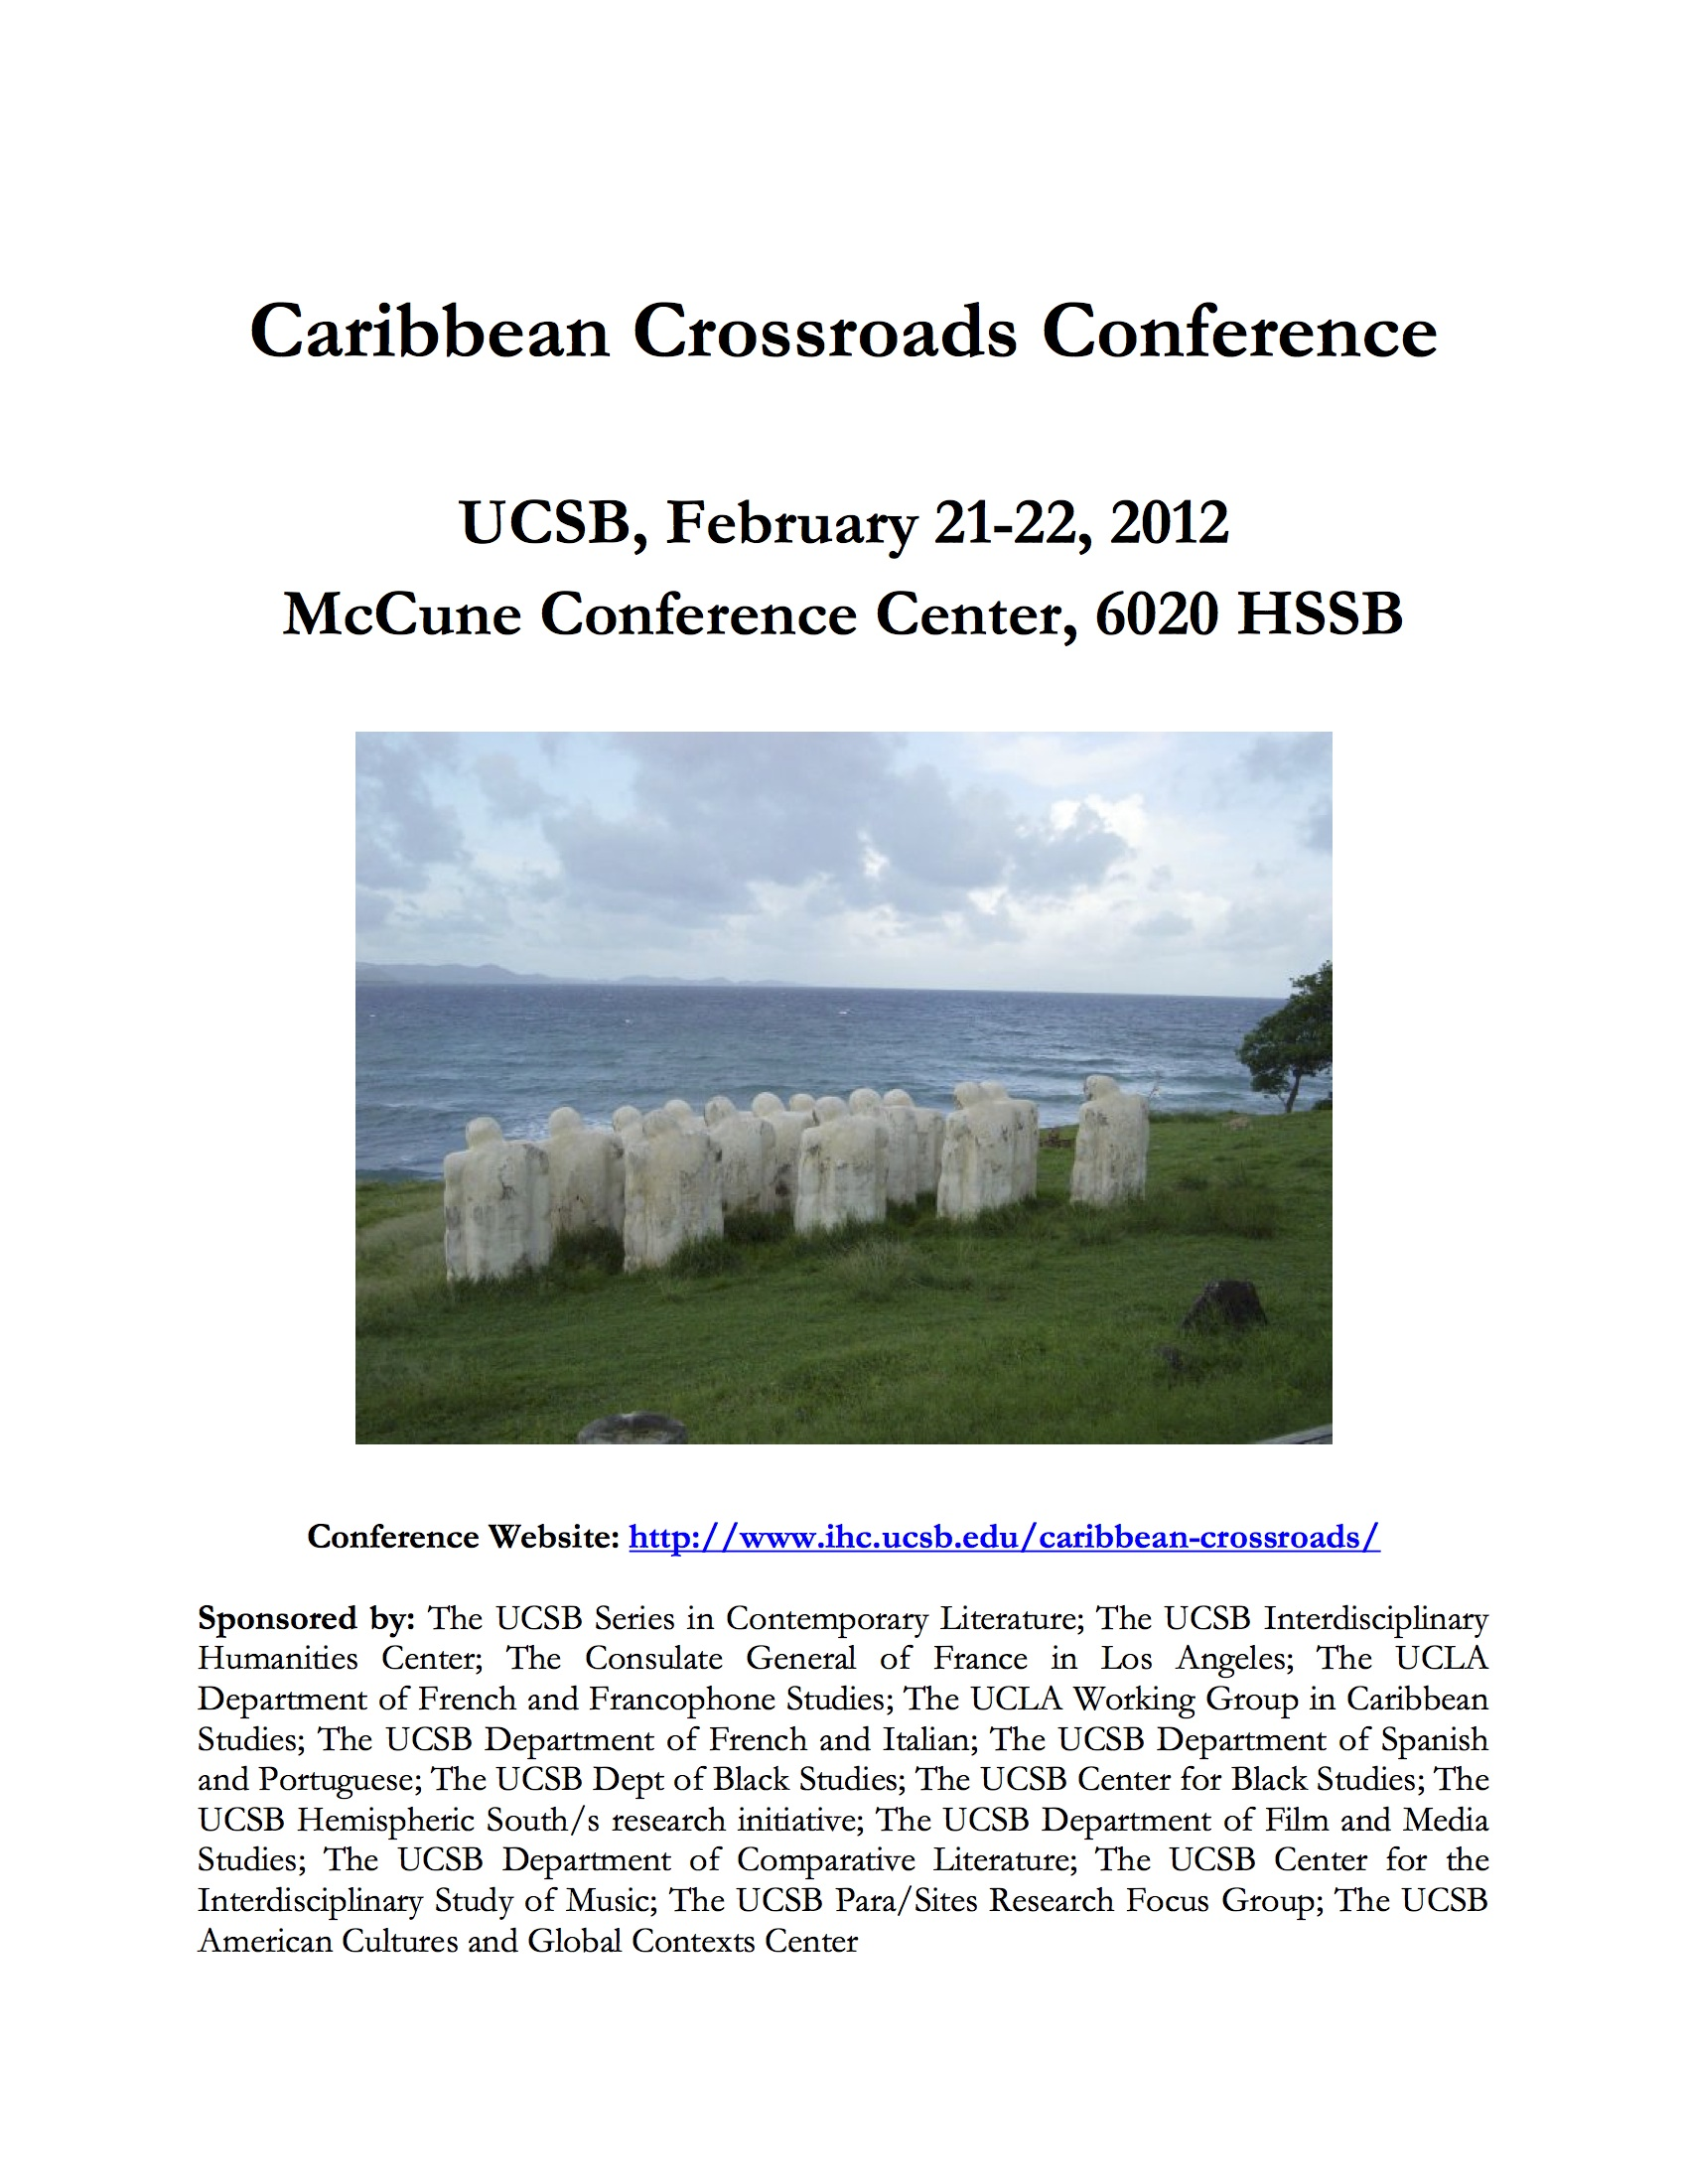 poster of caribbean crossroads